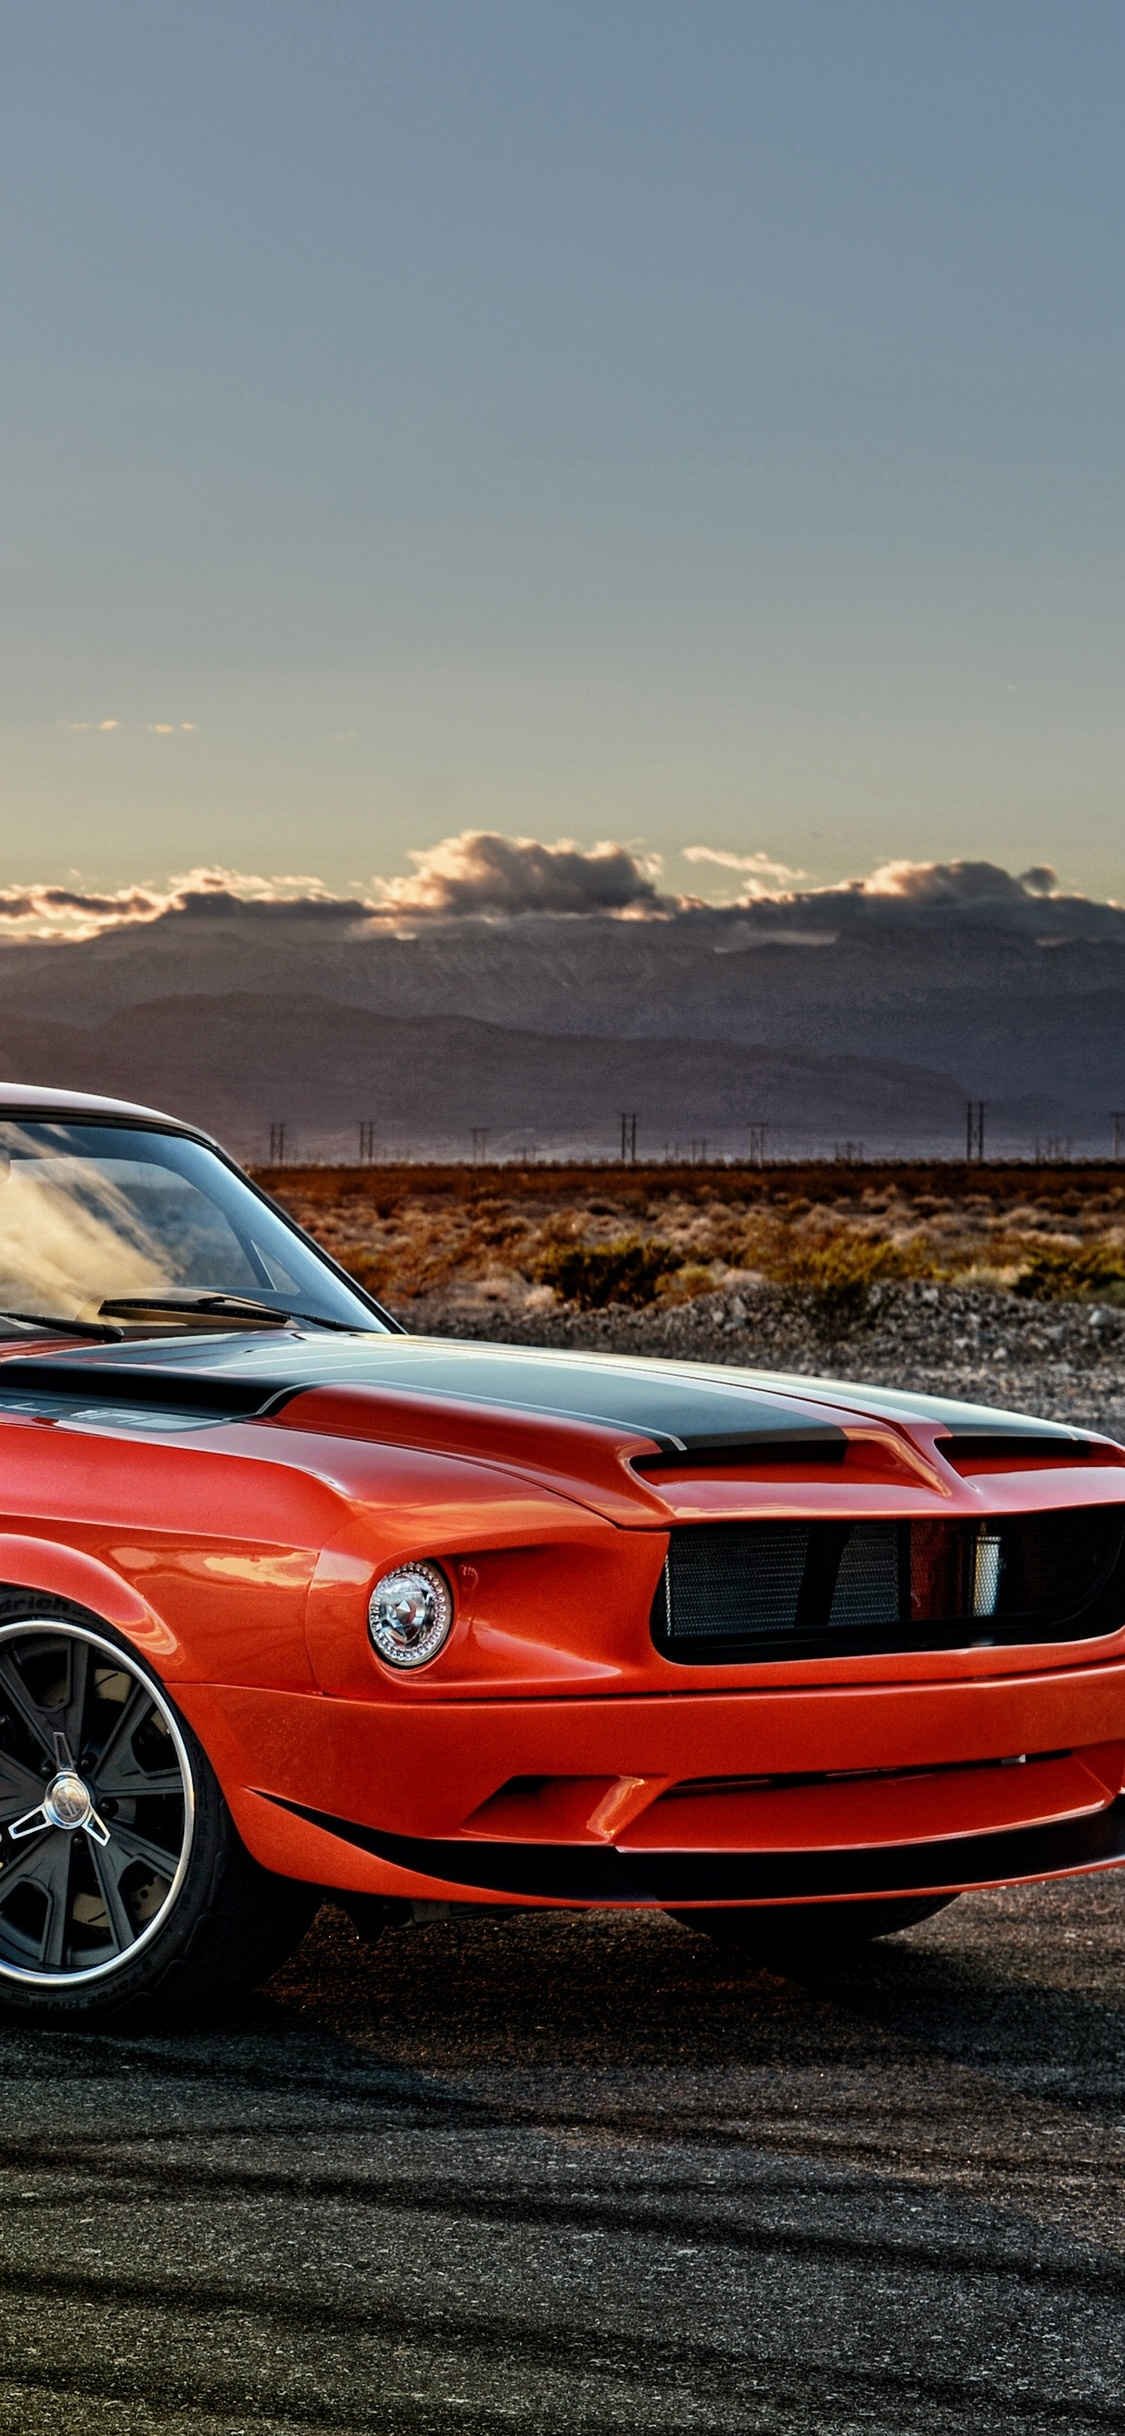 1125x2436 Ford Mustang Muscle Car 4k Iphone Xs Iphone 10